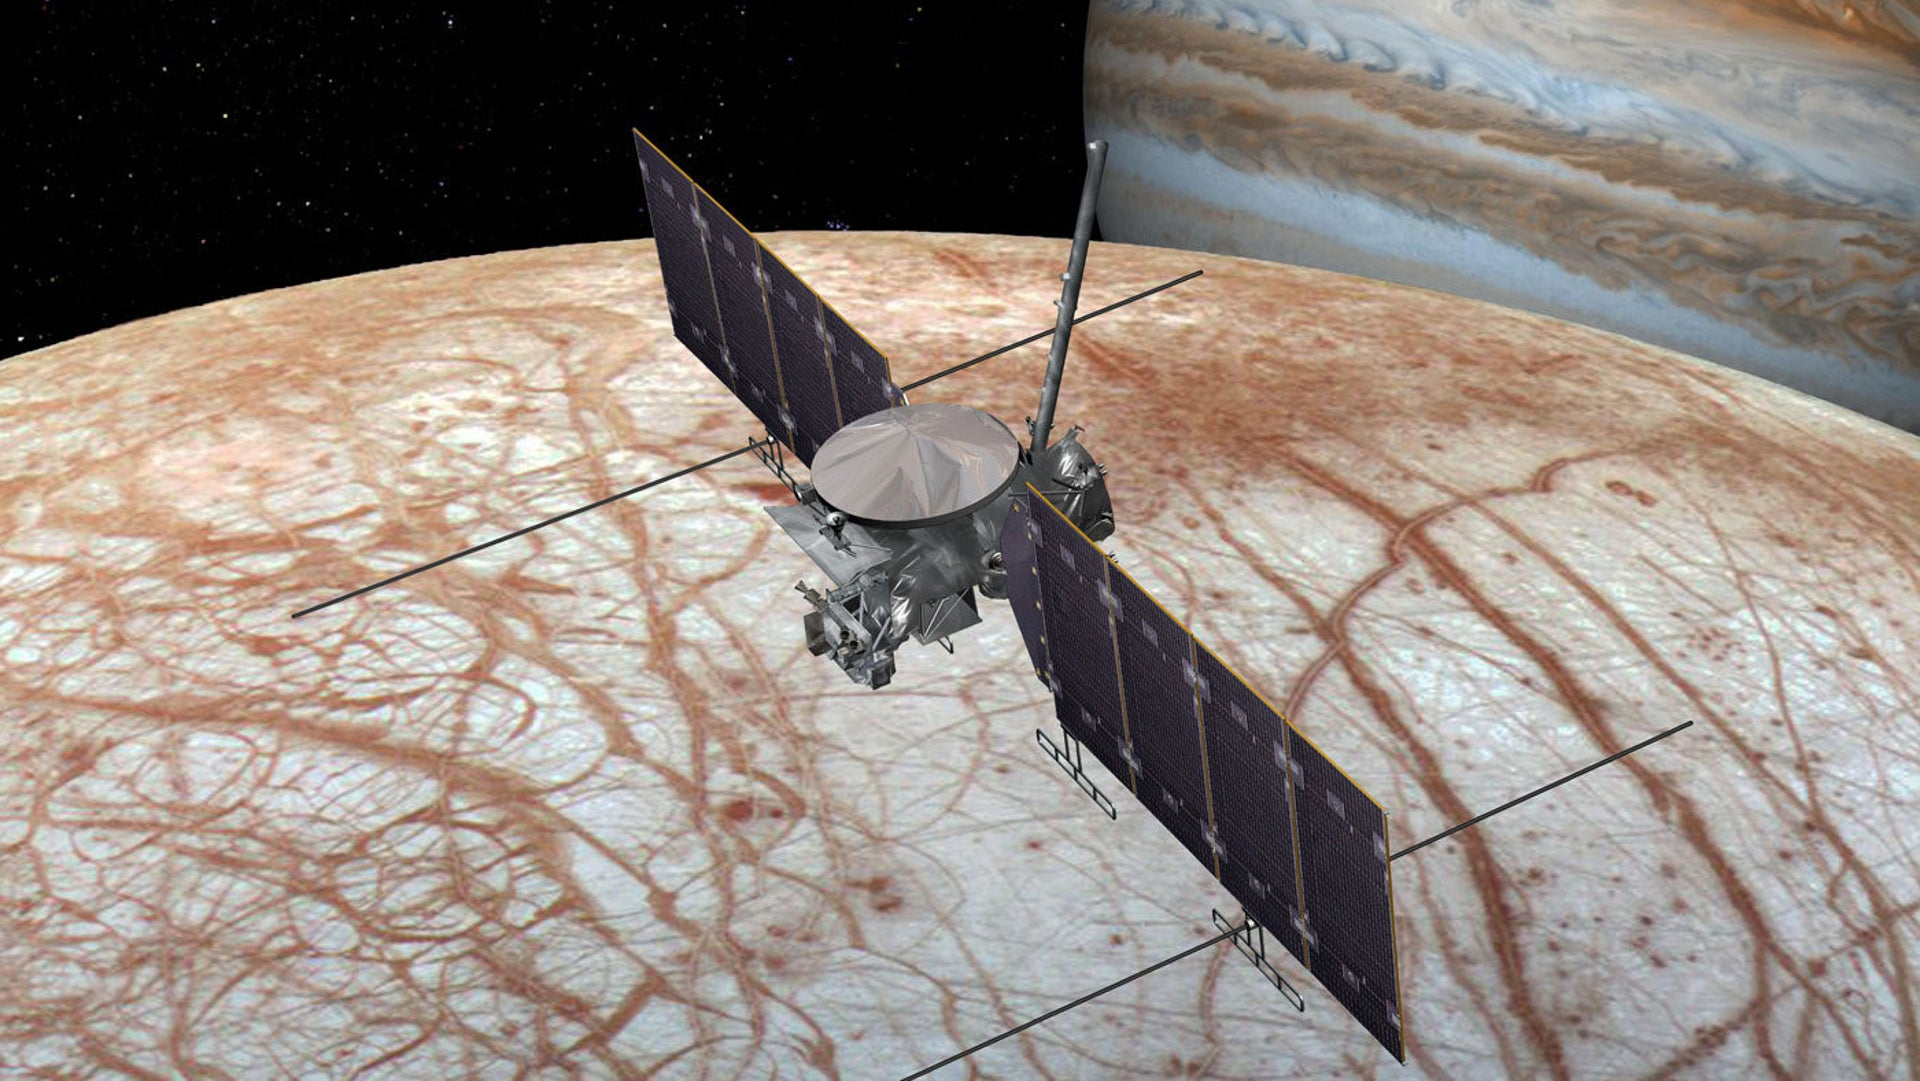 A 2016 artist's concept of the Europa Clipper spacecraft. The design is changing as the spacecraft is developed.